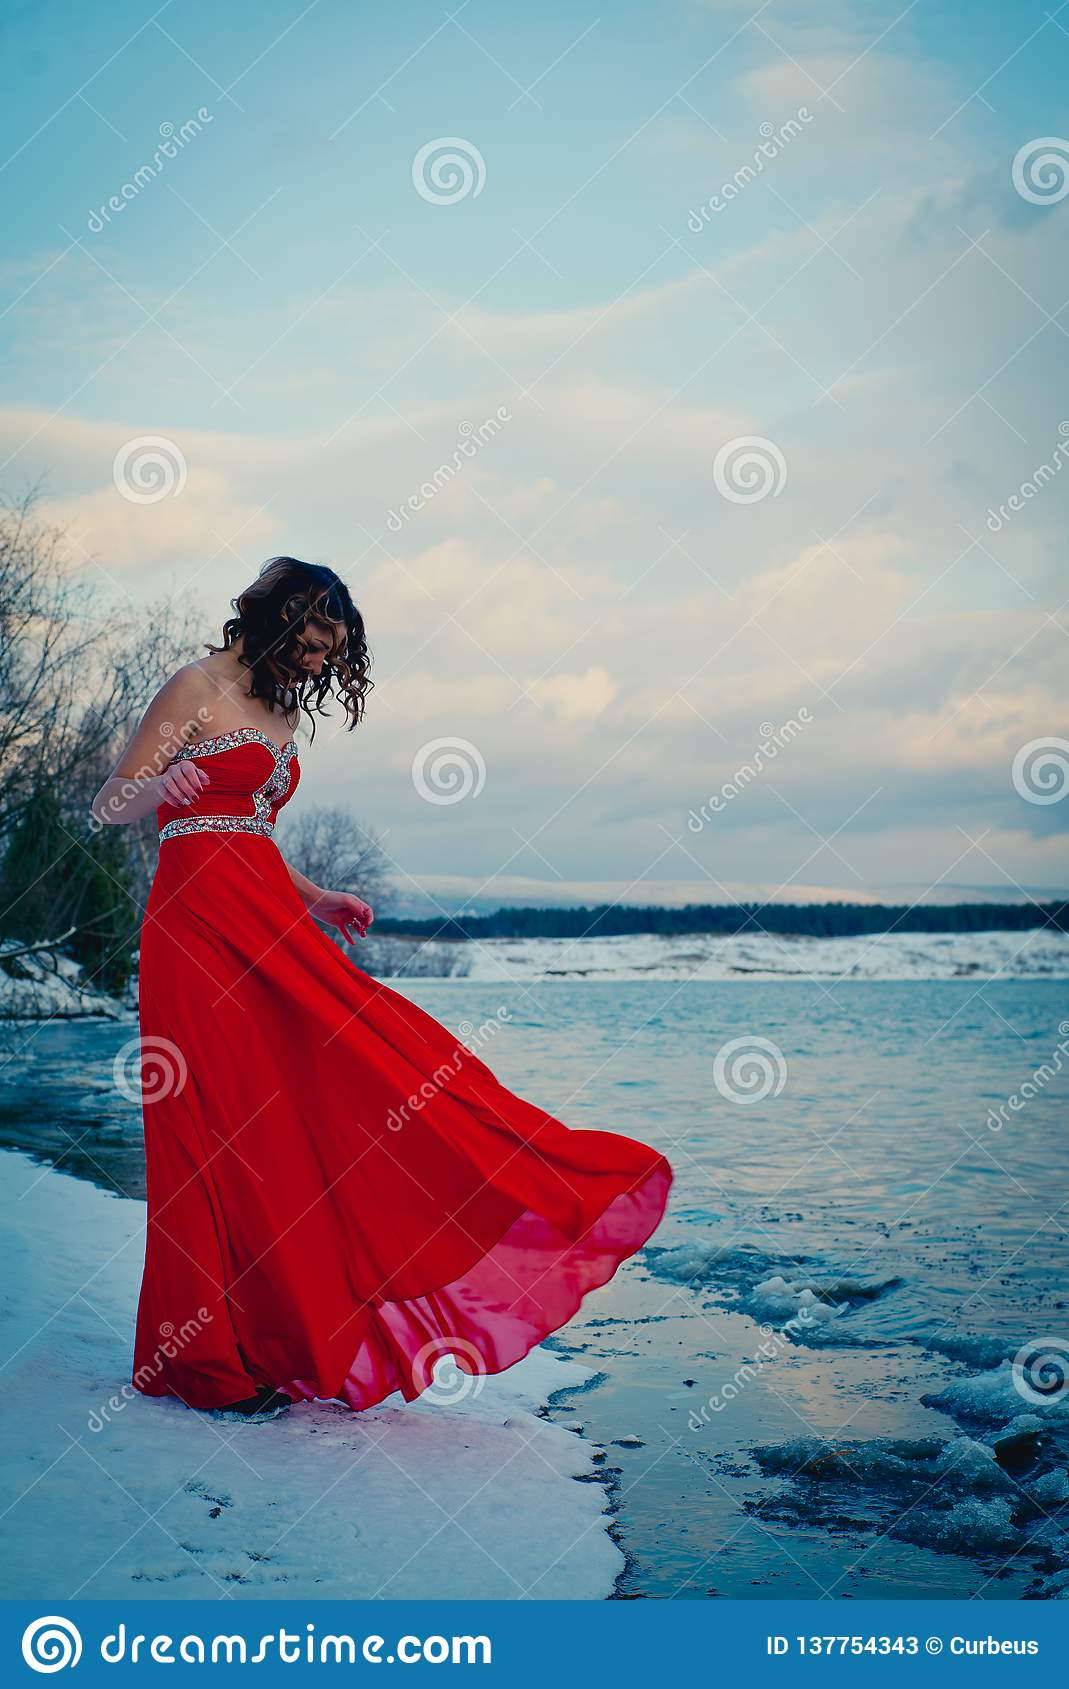 Woman in red dress. Siberia, ice water, winter, very cold